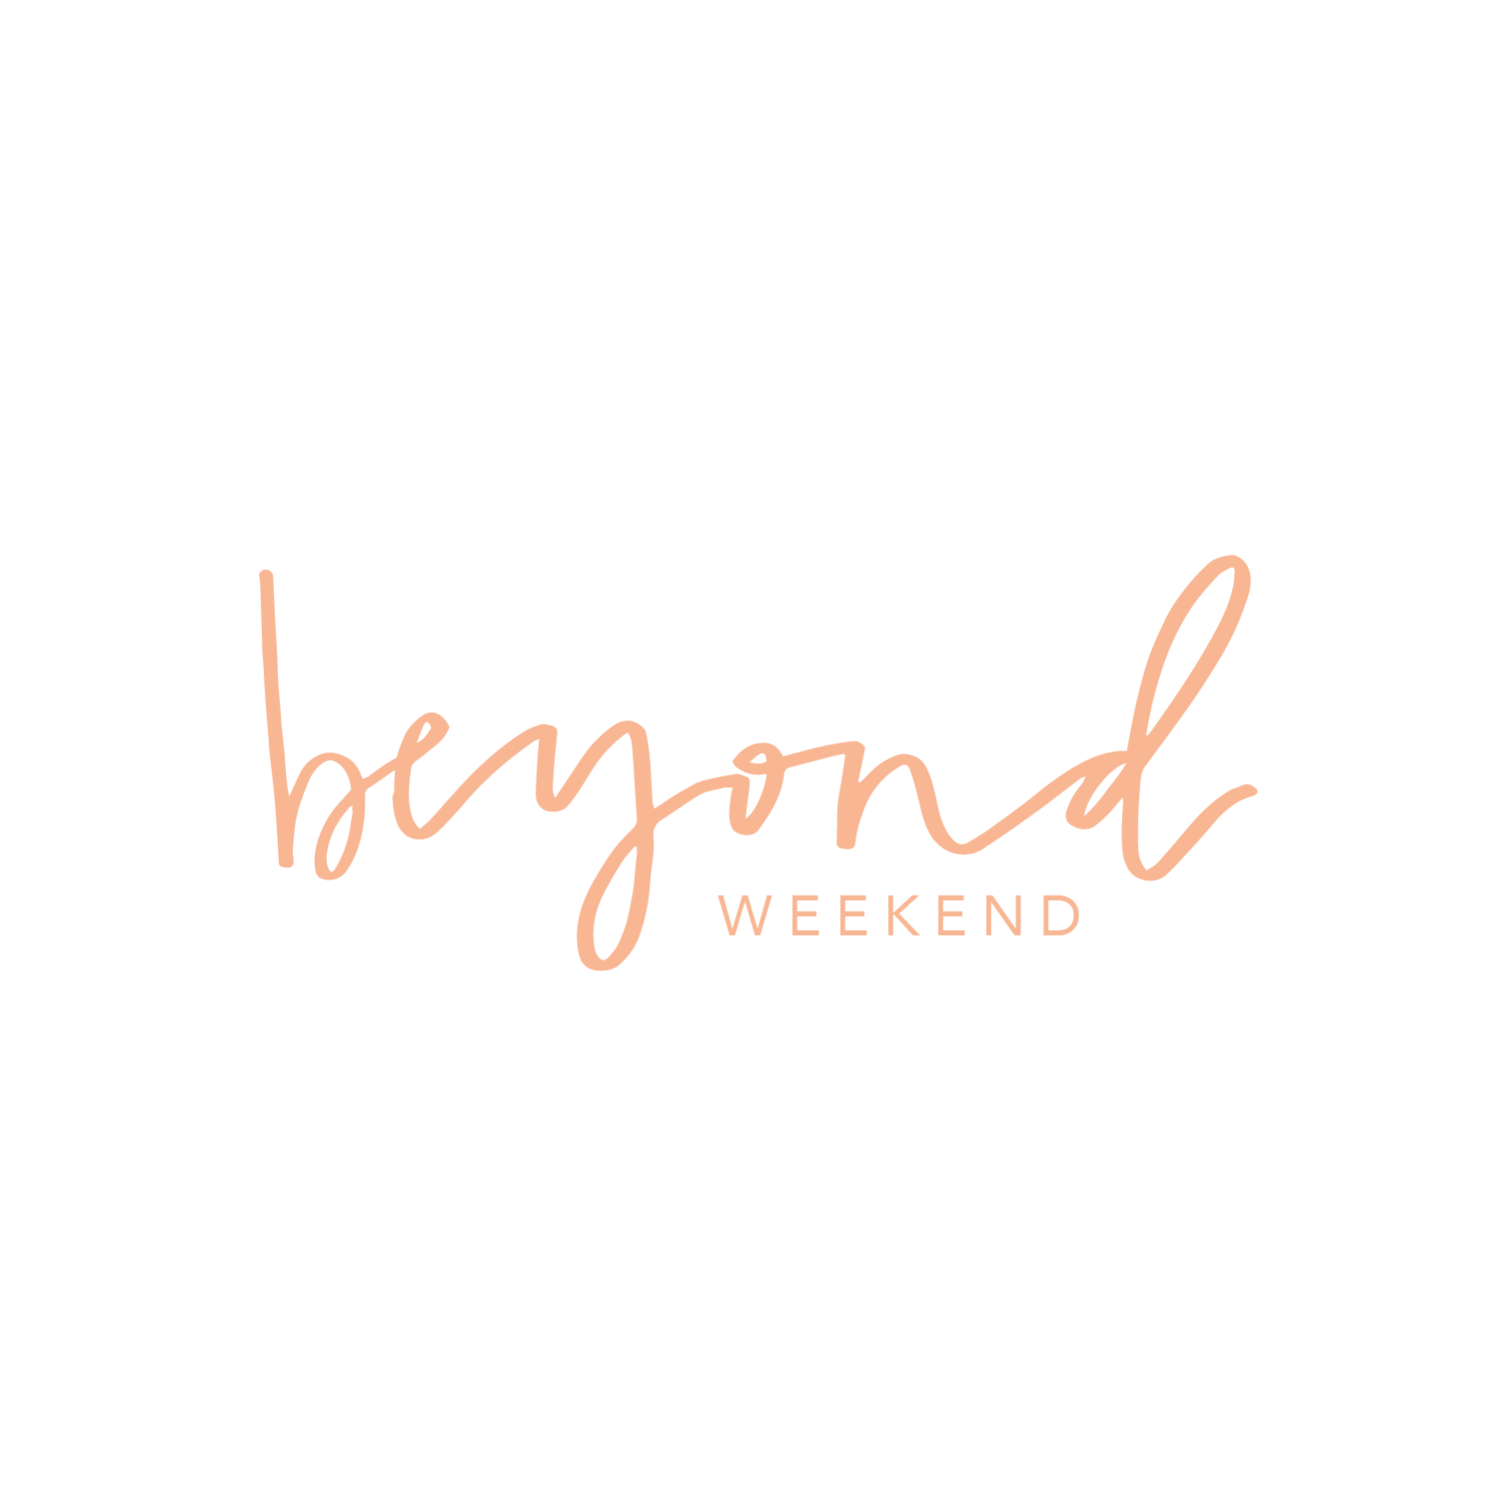 Beyond Weekend